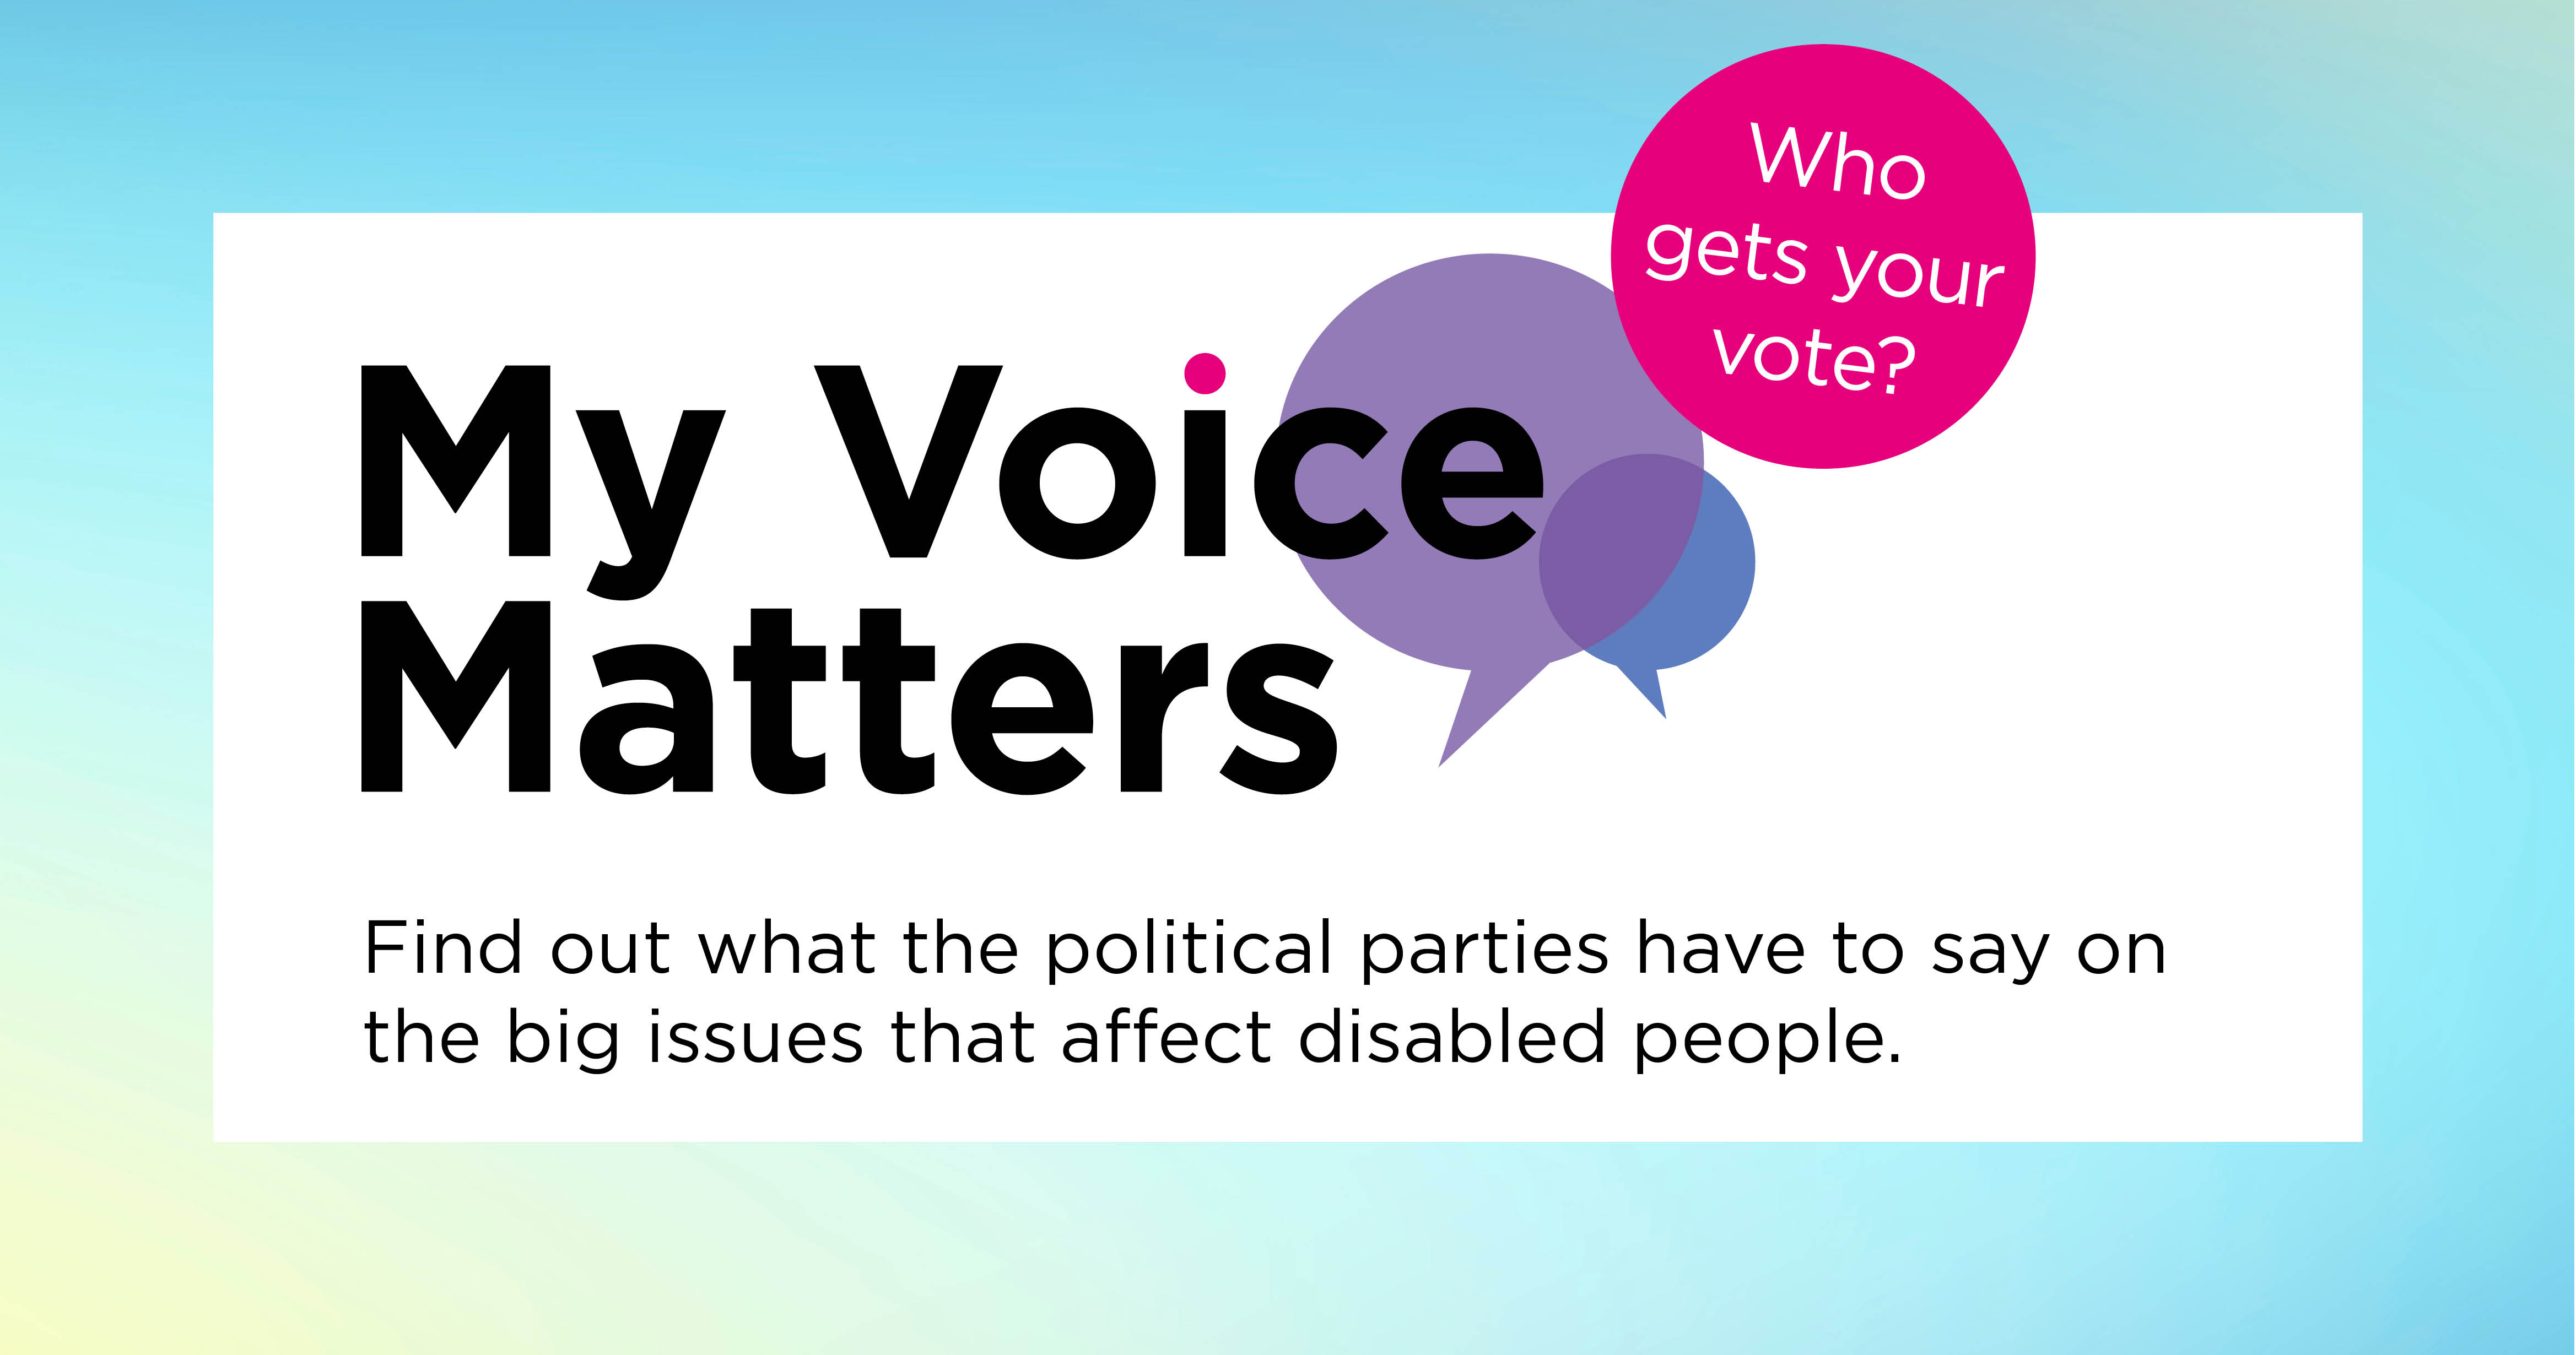 My Voice Matters - Who gets your vote?